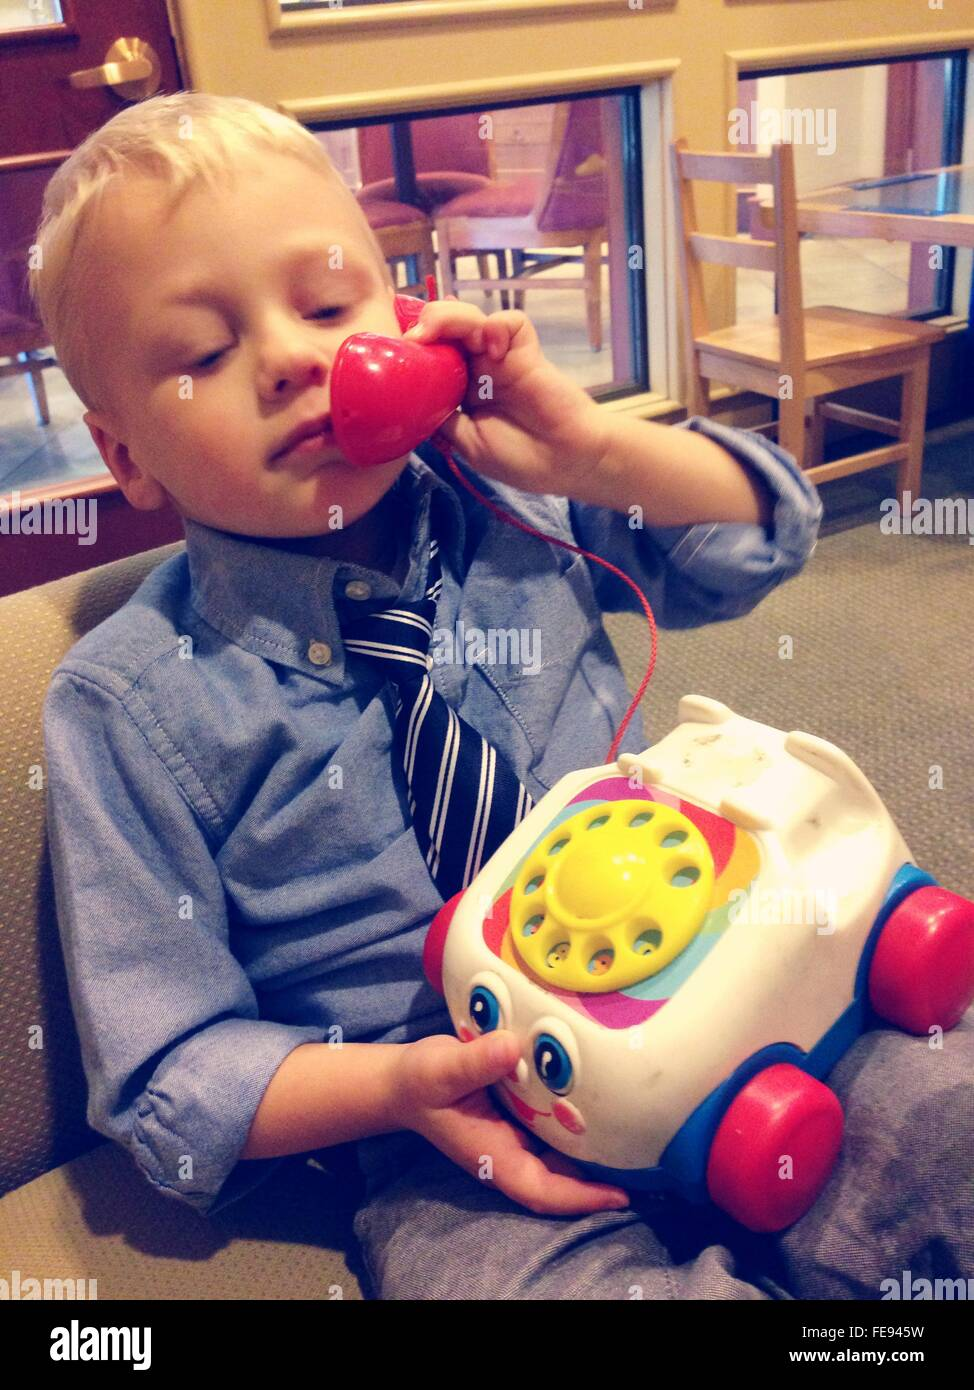 a67efd1ea Boy Playing With Toy Phone While Sitting On Sofa - Stock Image